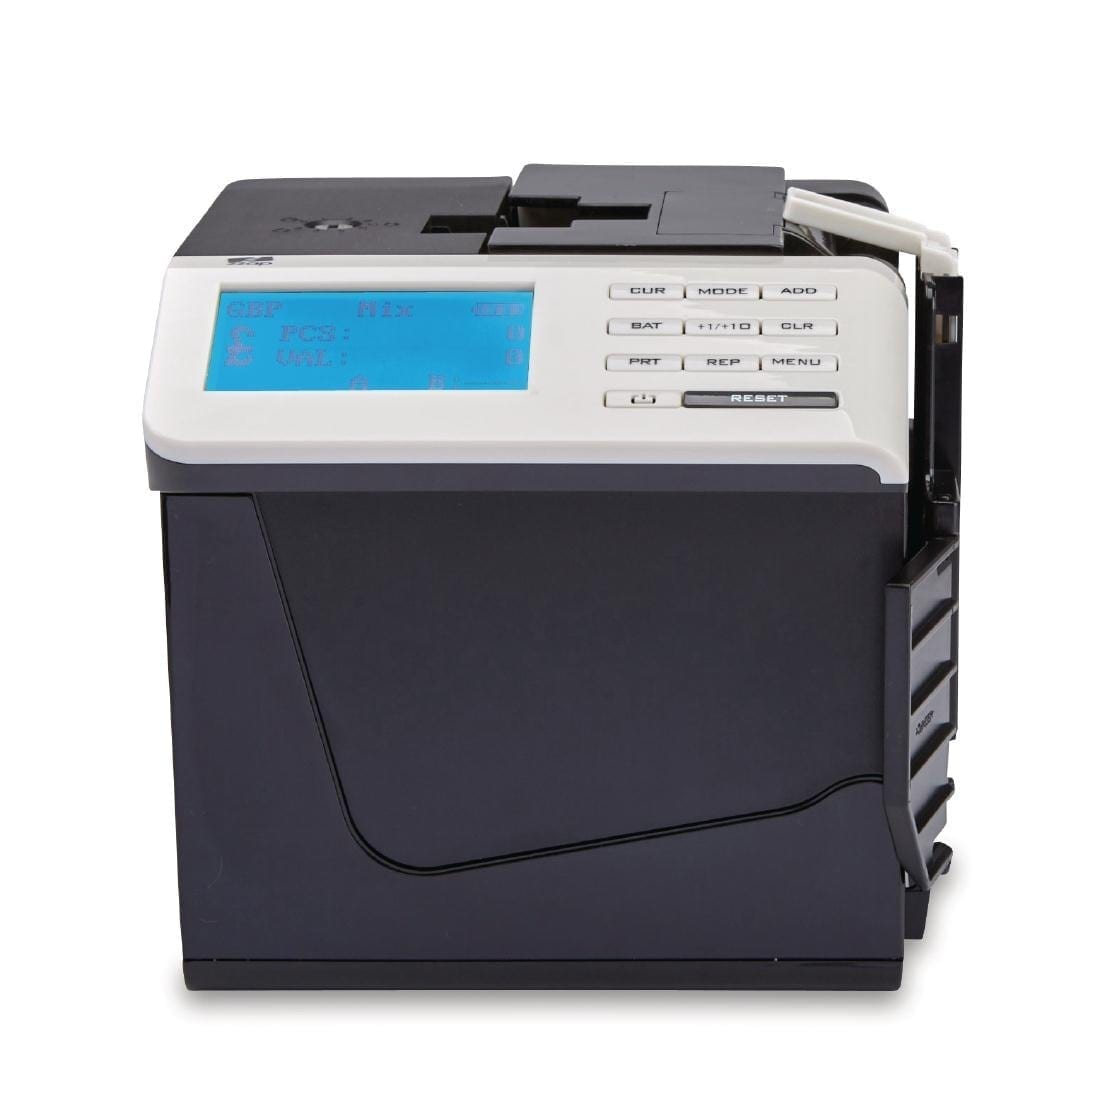 Zzap Banknote Counter 250notes/min - 4 currencies Rechargeable Battery